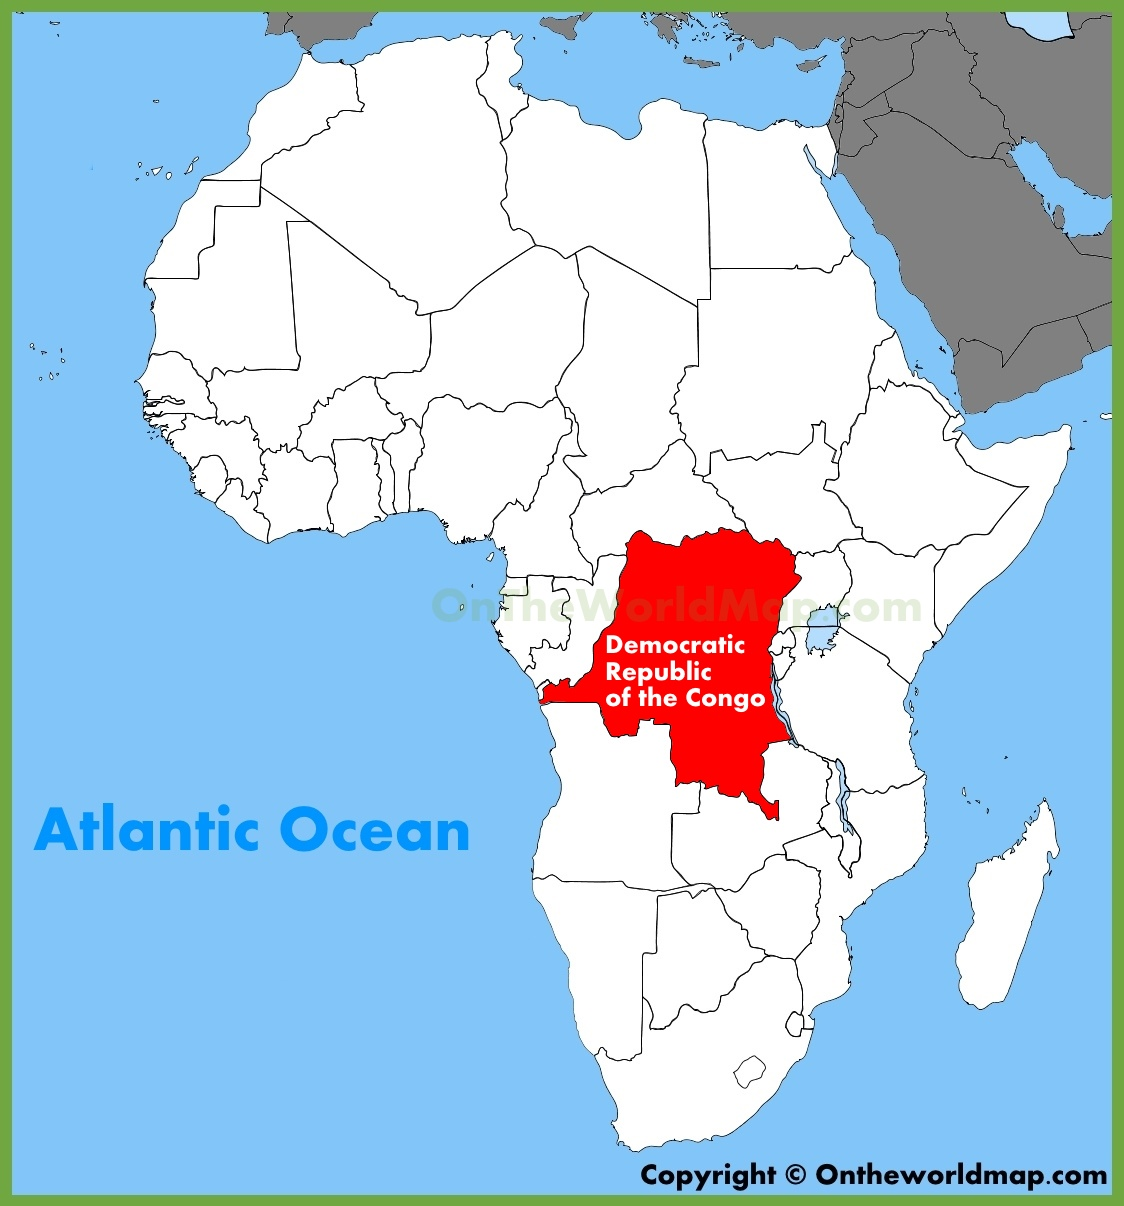 Democratic Republic of the Congo location on the Africa map